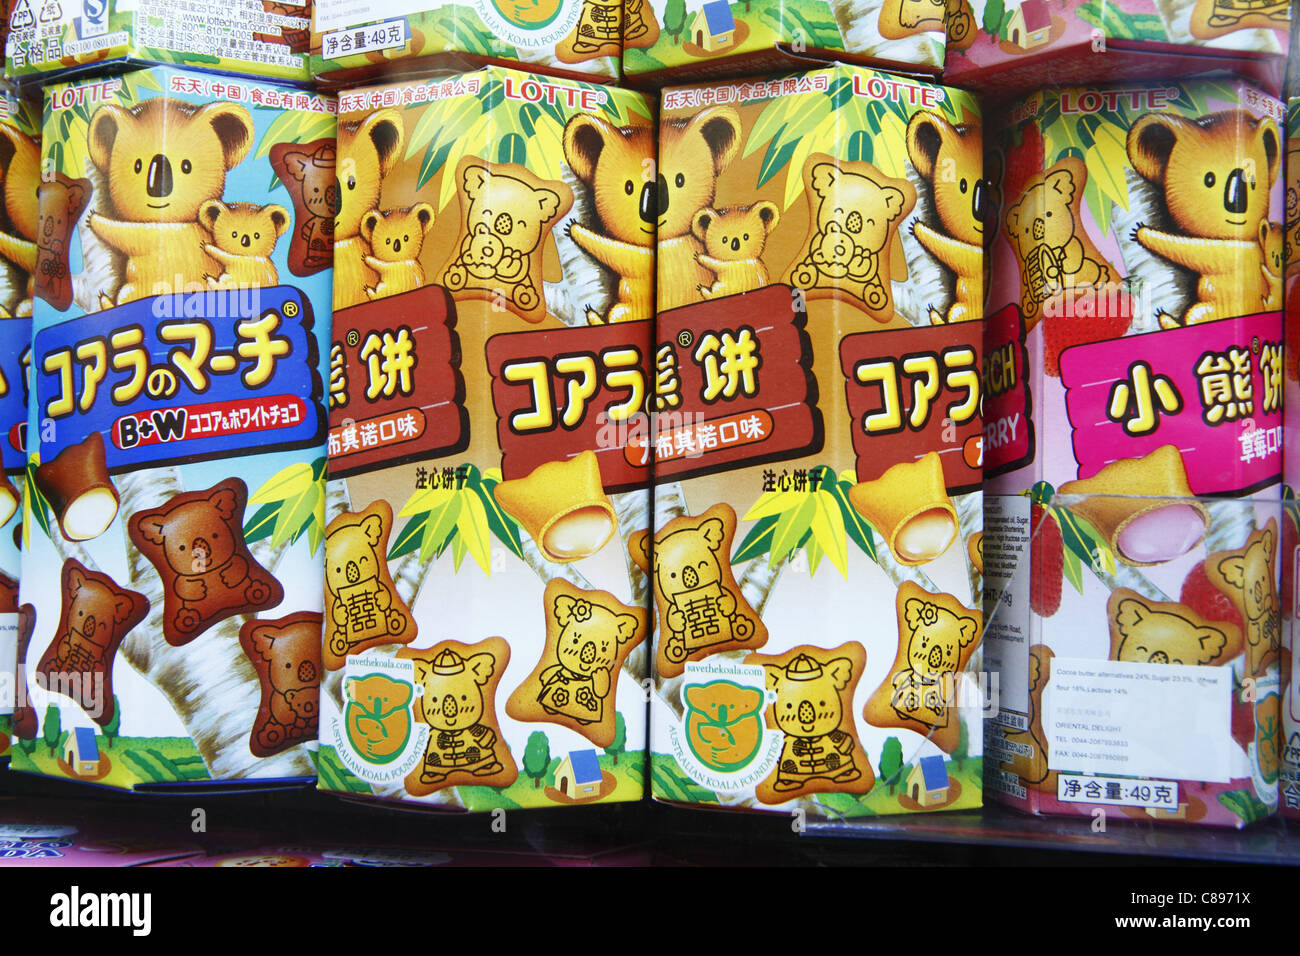 Boxes of Chinese novelty biscuits in supermarket, Gerrard street, London UK - Stock Image